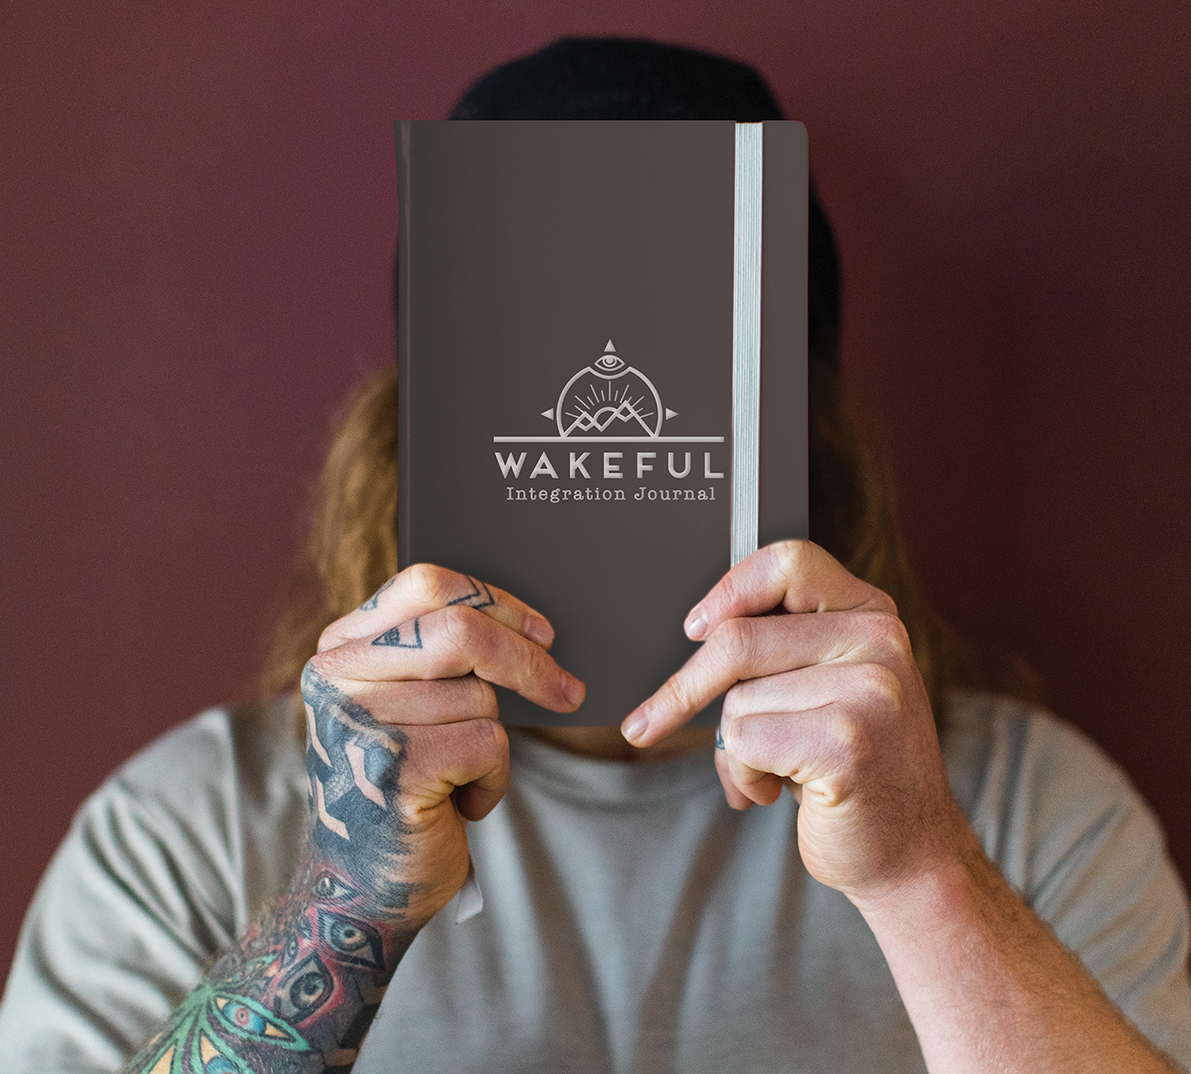 a man with tattoos and long hari holds up an integration journal over his face